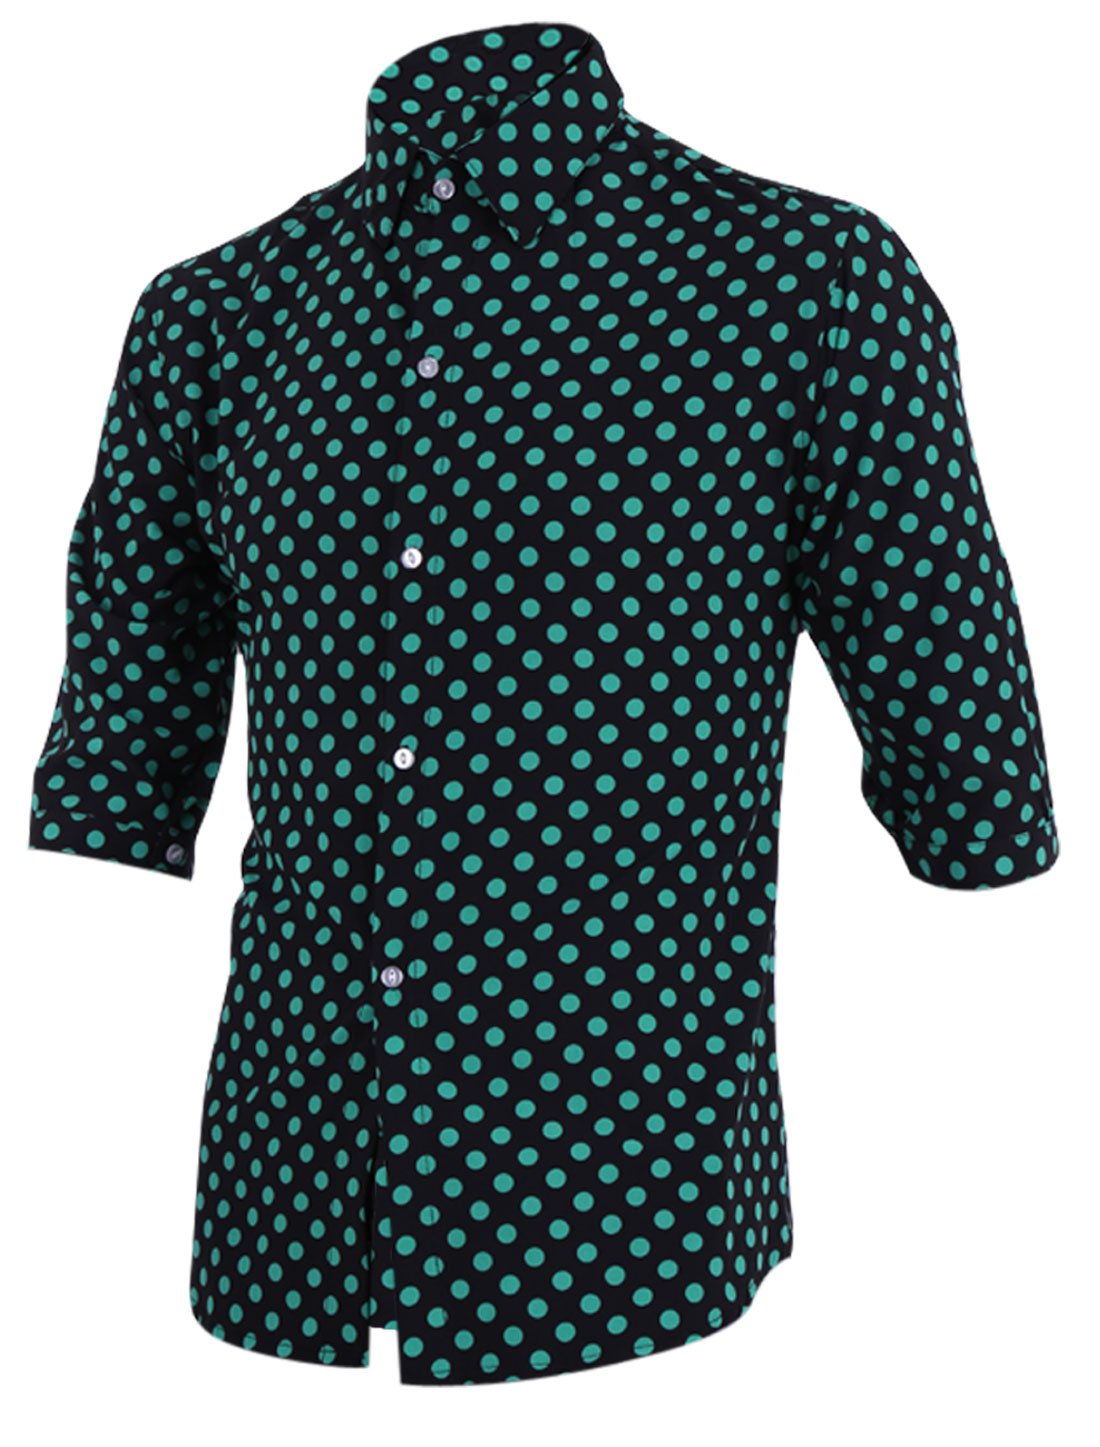 Man Half Sleeves Point Collar Contrast Color Shirts Green Black M